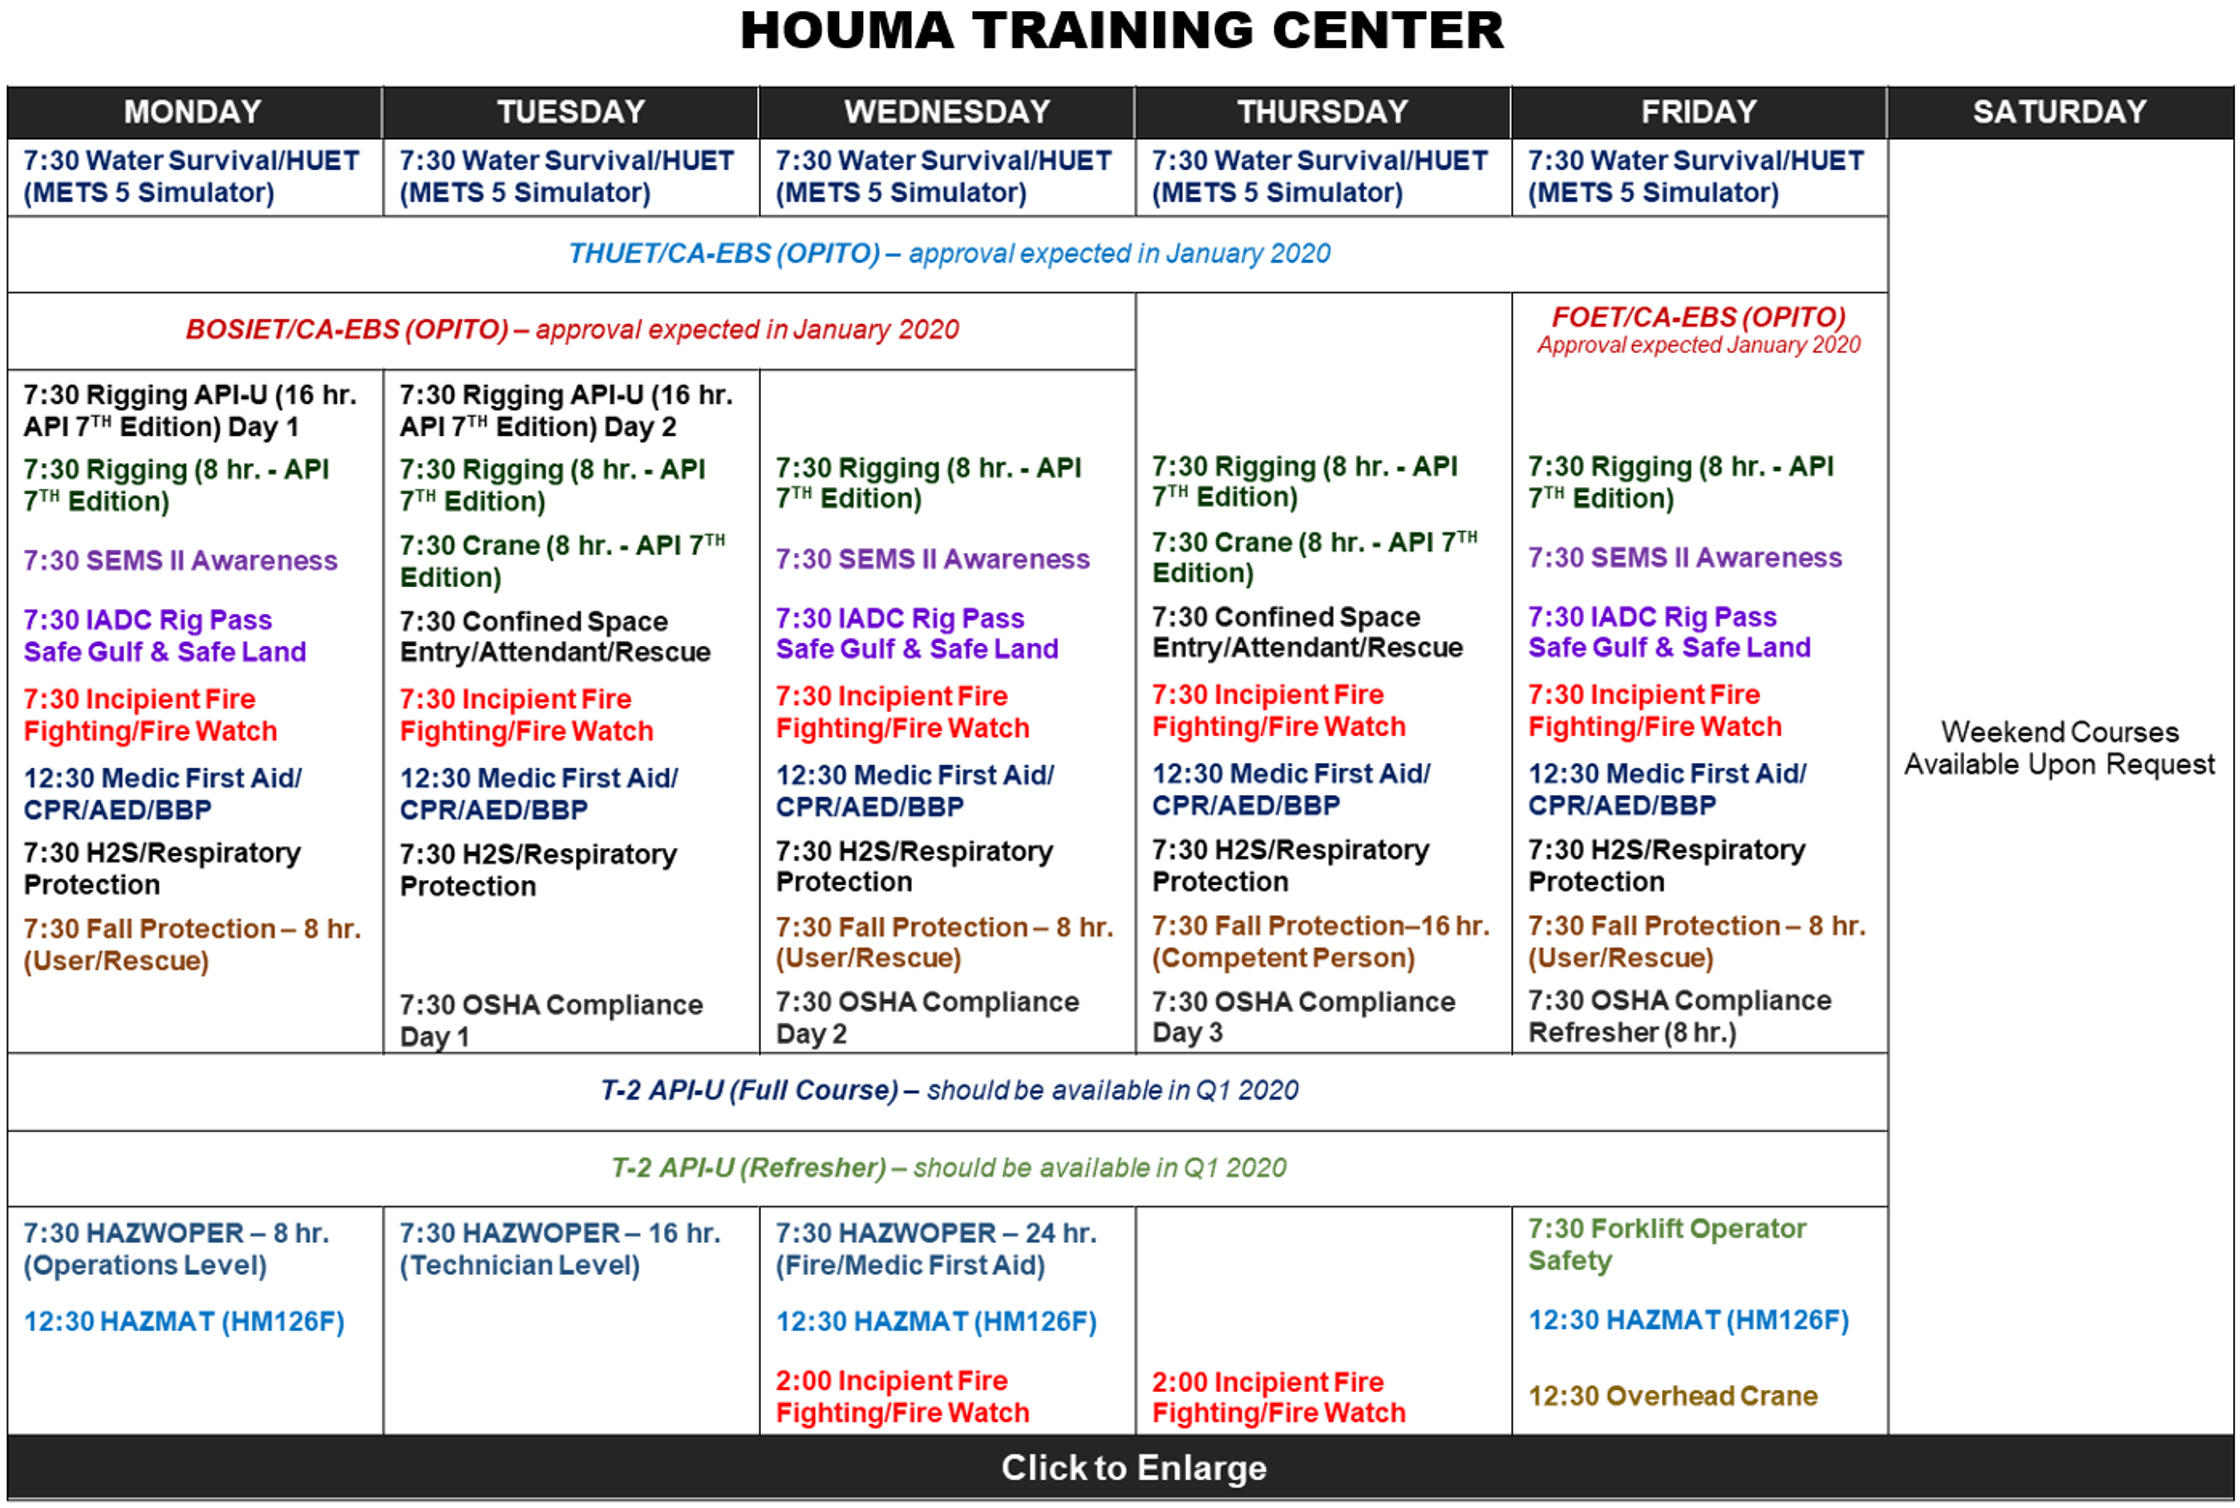 Training Schedule - M&A Safety Services - Safety Training for Oil & Gas Industry Lafayette LA